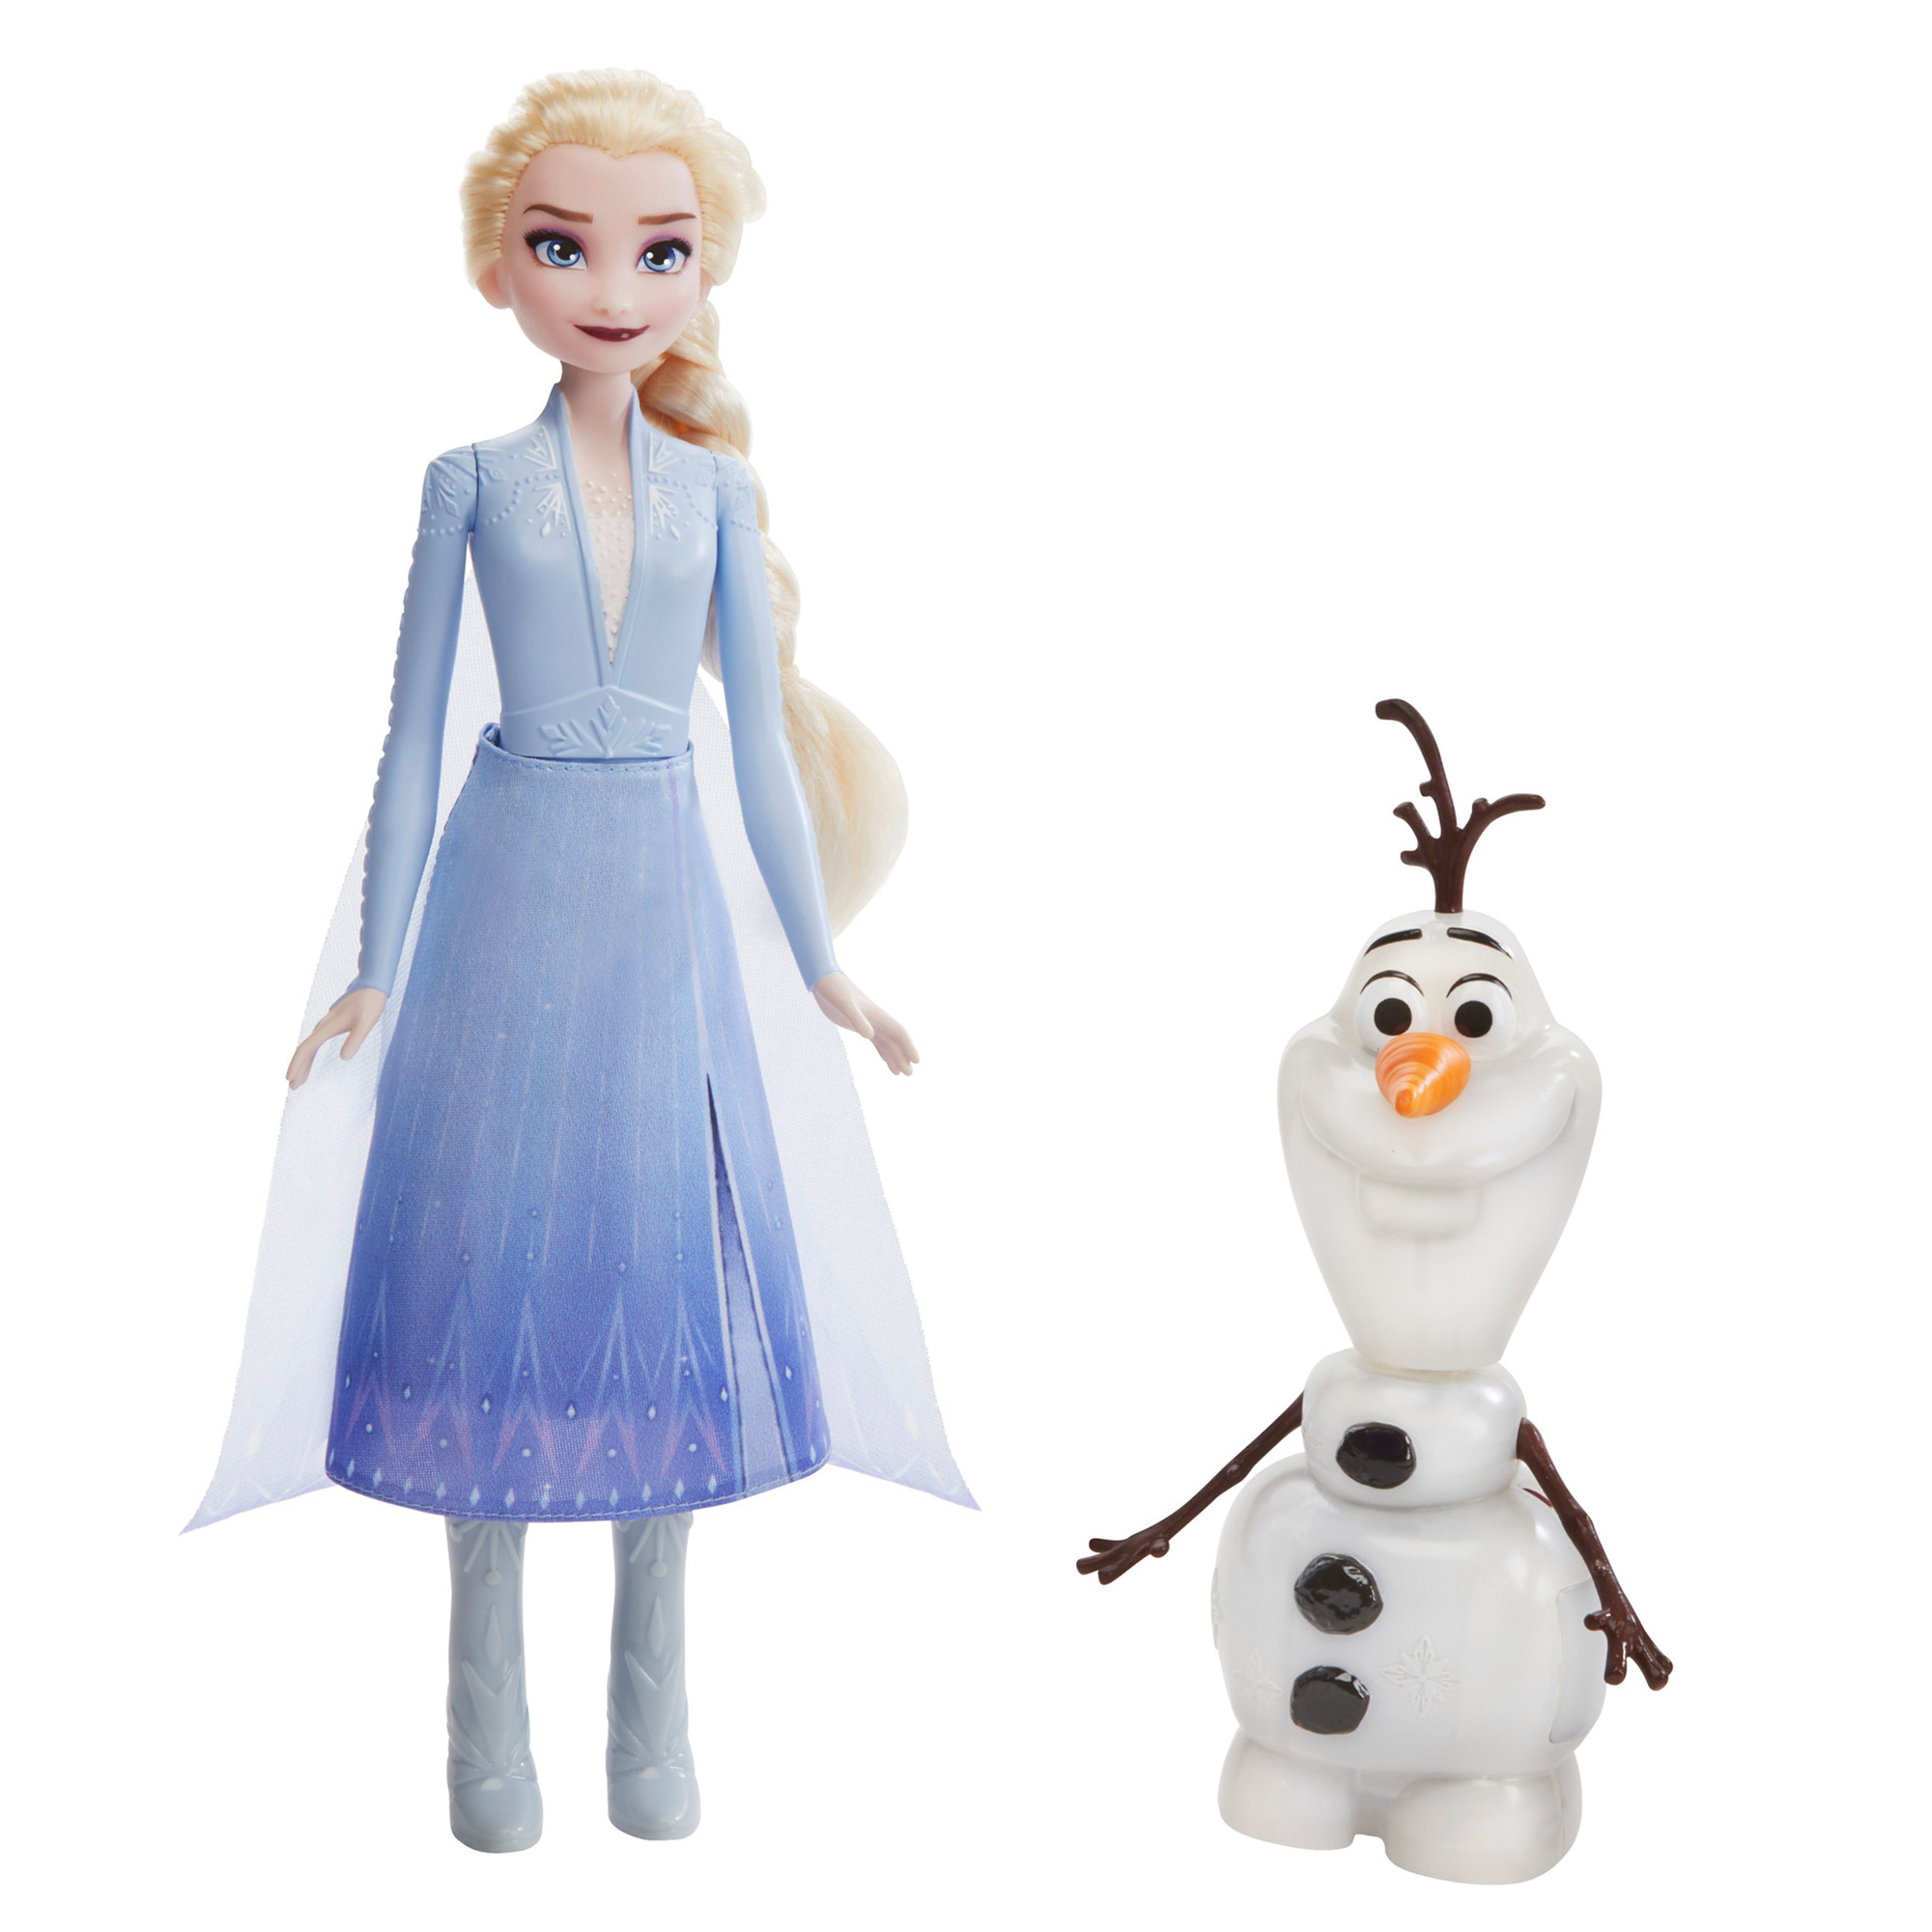 Talk and Glow Olaf and Elsa Dolls